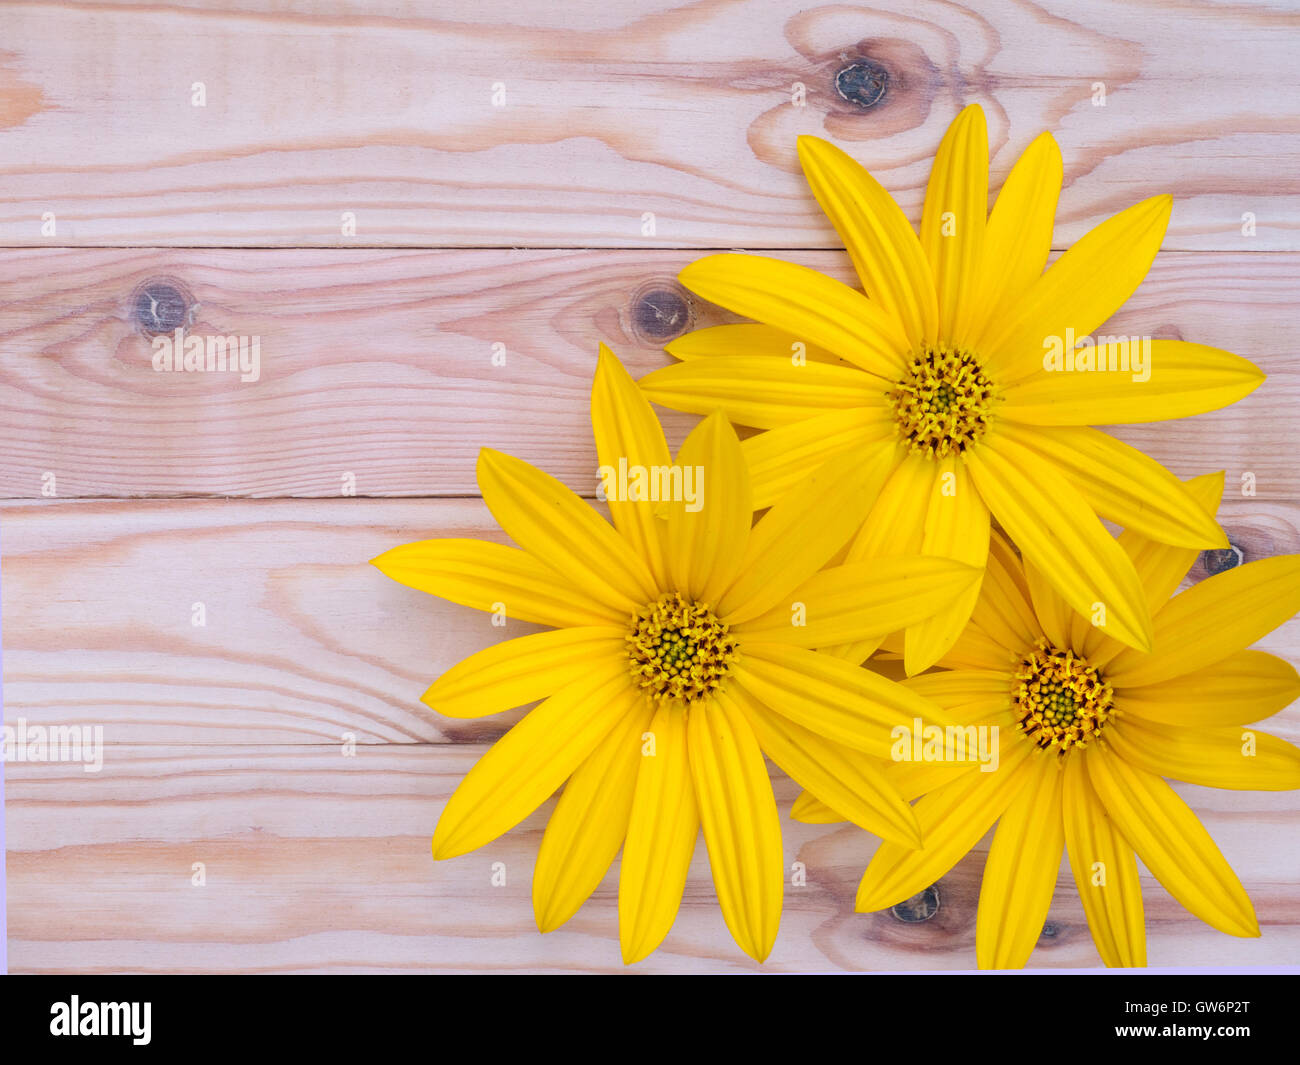 Three yellow topinambur flowers on the knotted wooden planks background - Stock Image